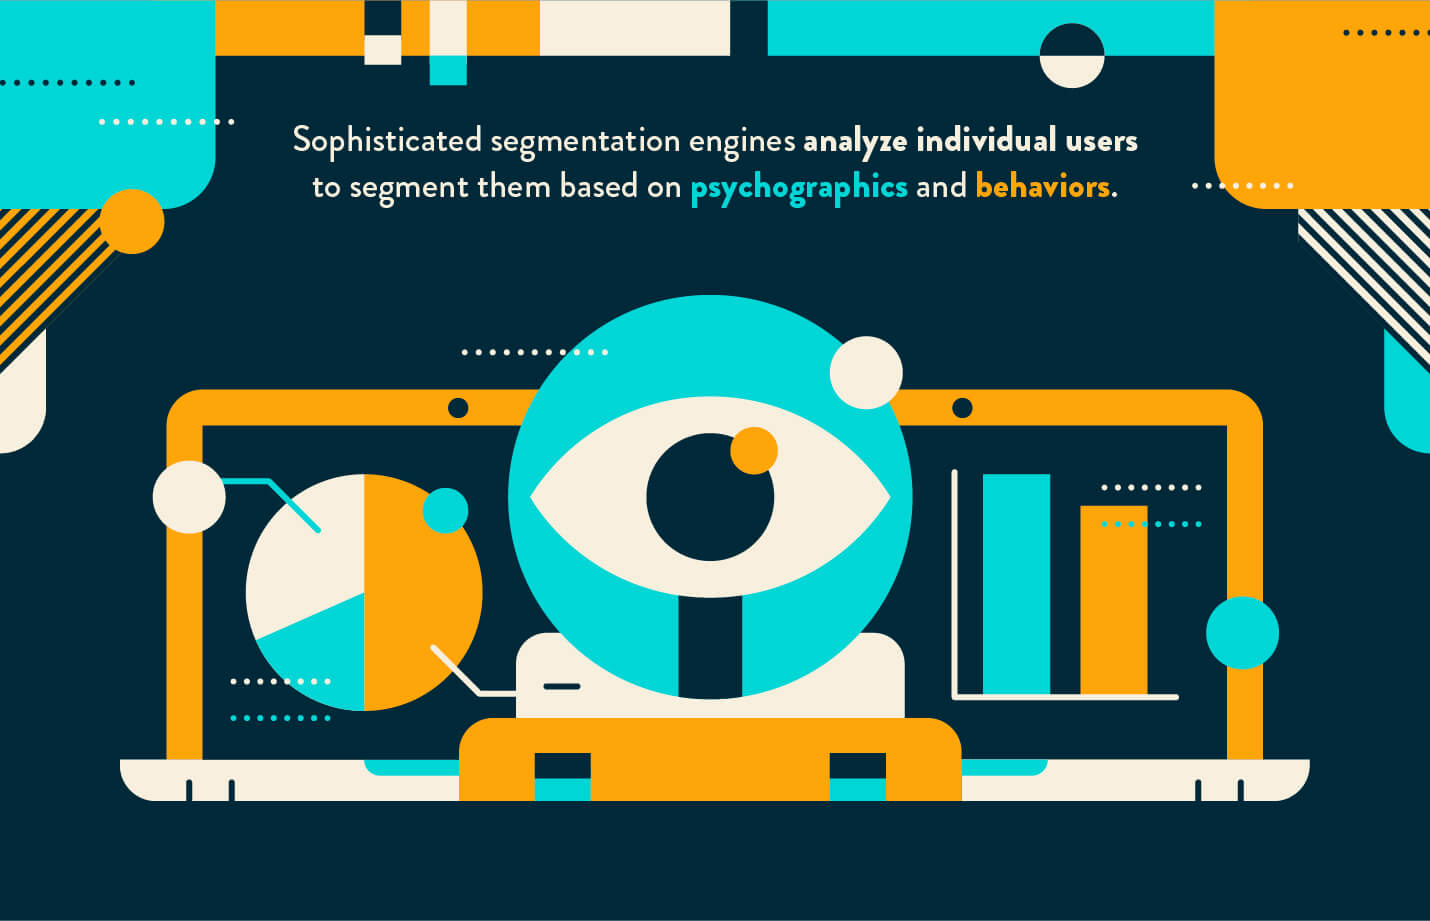 psychographic segmentation data science icon with eye analyzing charts in shades of blue and orange